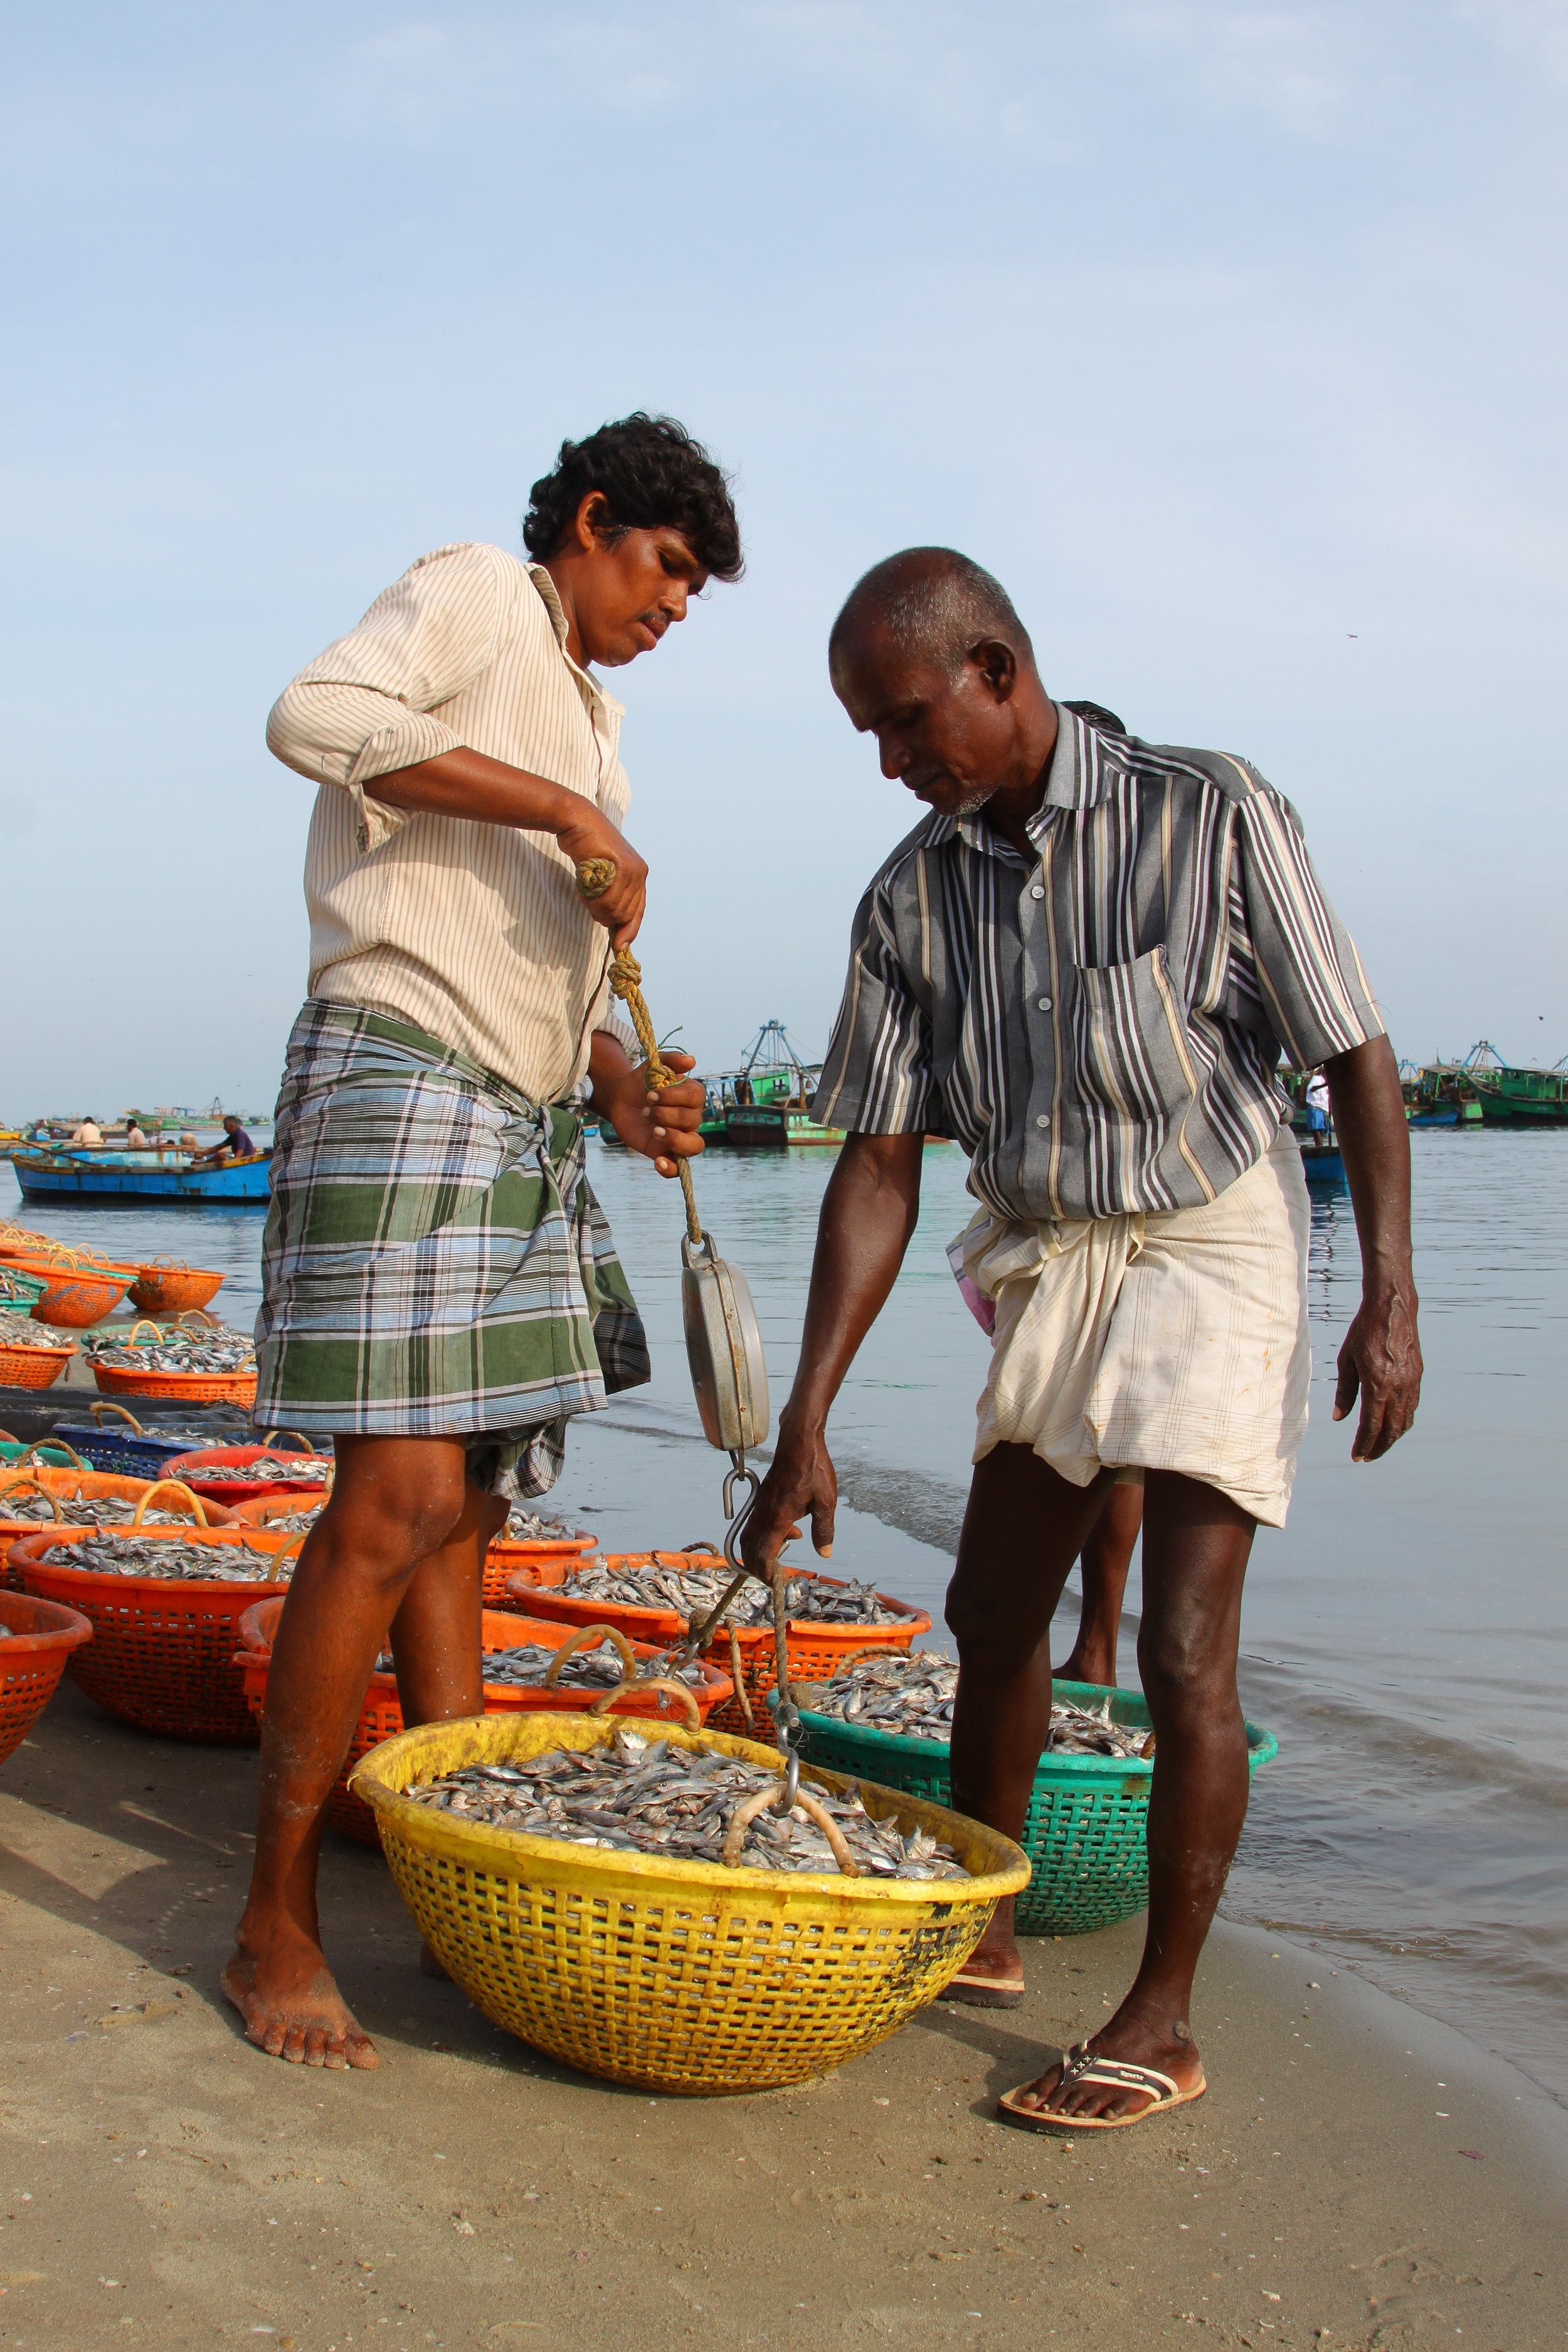 Buyers from chicken farm and fish oil plants come directly to the shore to buy the bycatch from the trawlers. Bycatch which has a greater fish composition is sold at greater rates than those with mixed composition (e.g. with crustaceans, shells etc).  Photo by Tanvi Vaidyanathan/Project Seahorse.